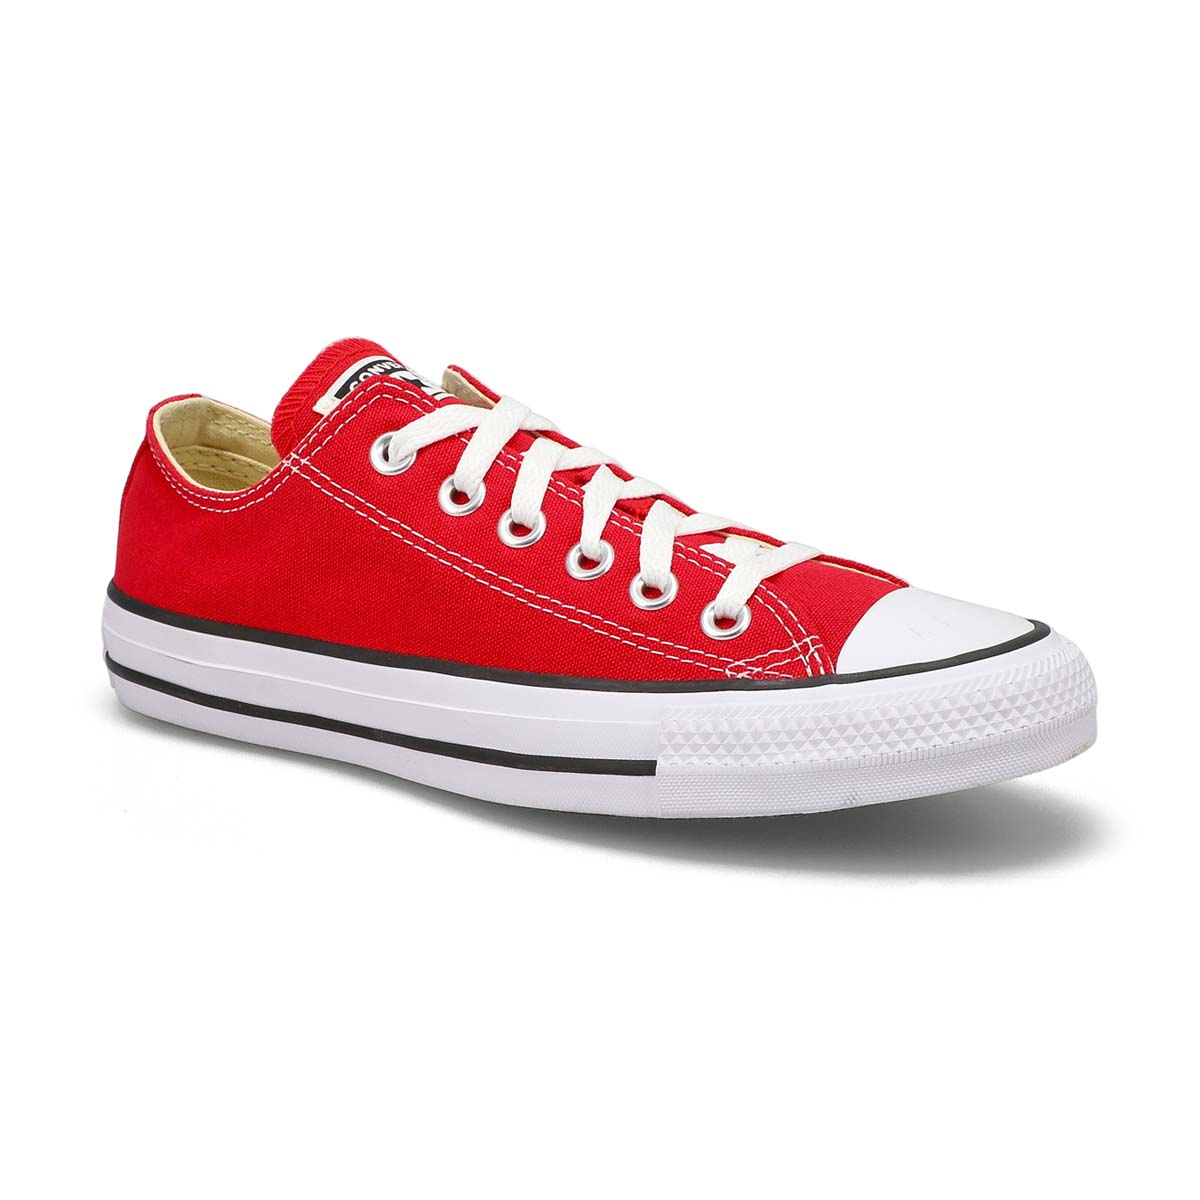 Women's CHUCK TAYLOR CORE OX red sneakers